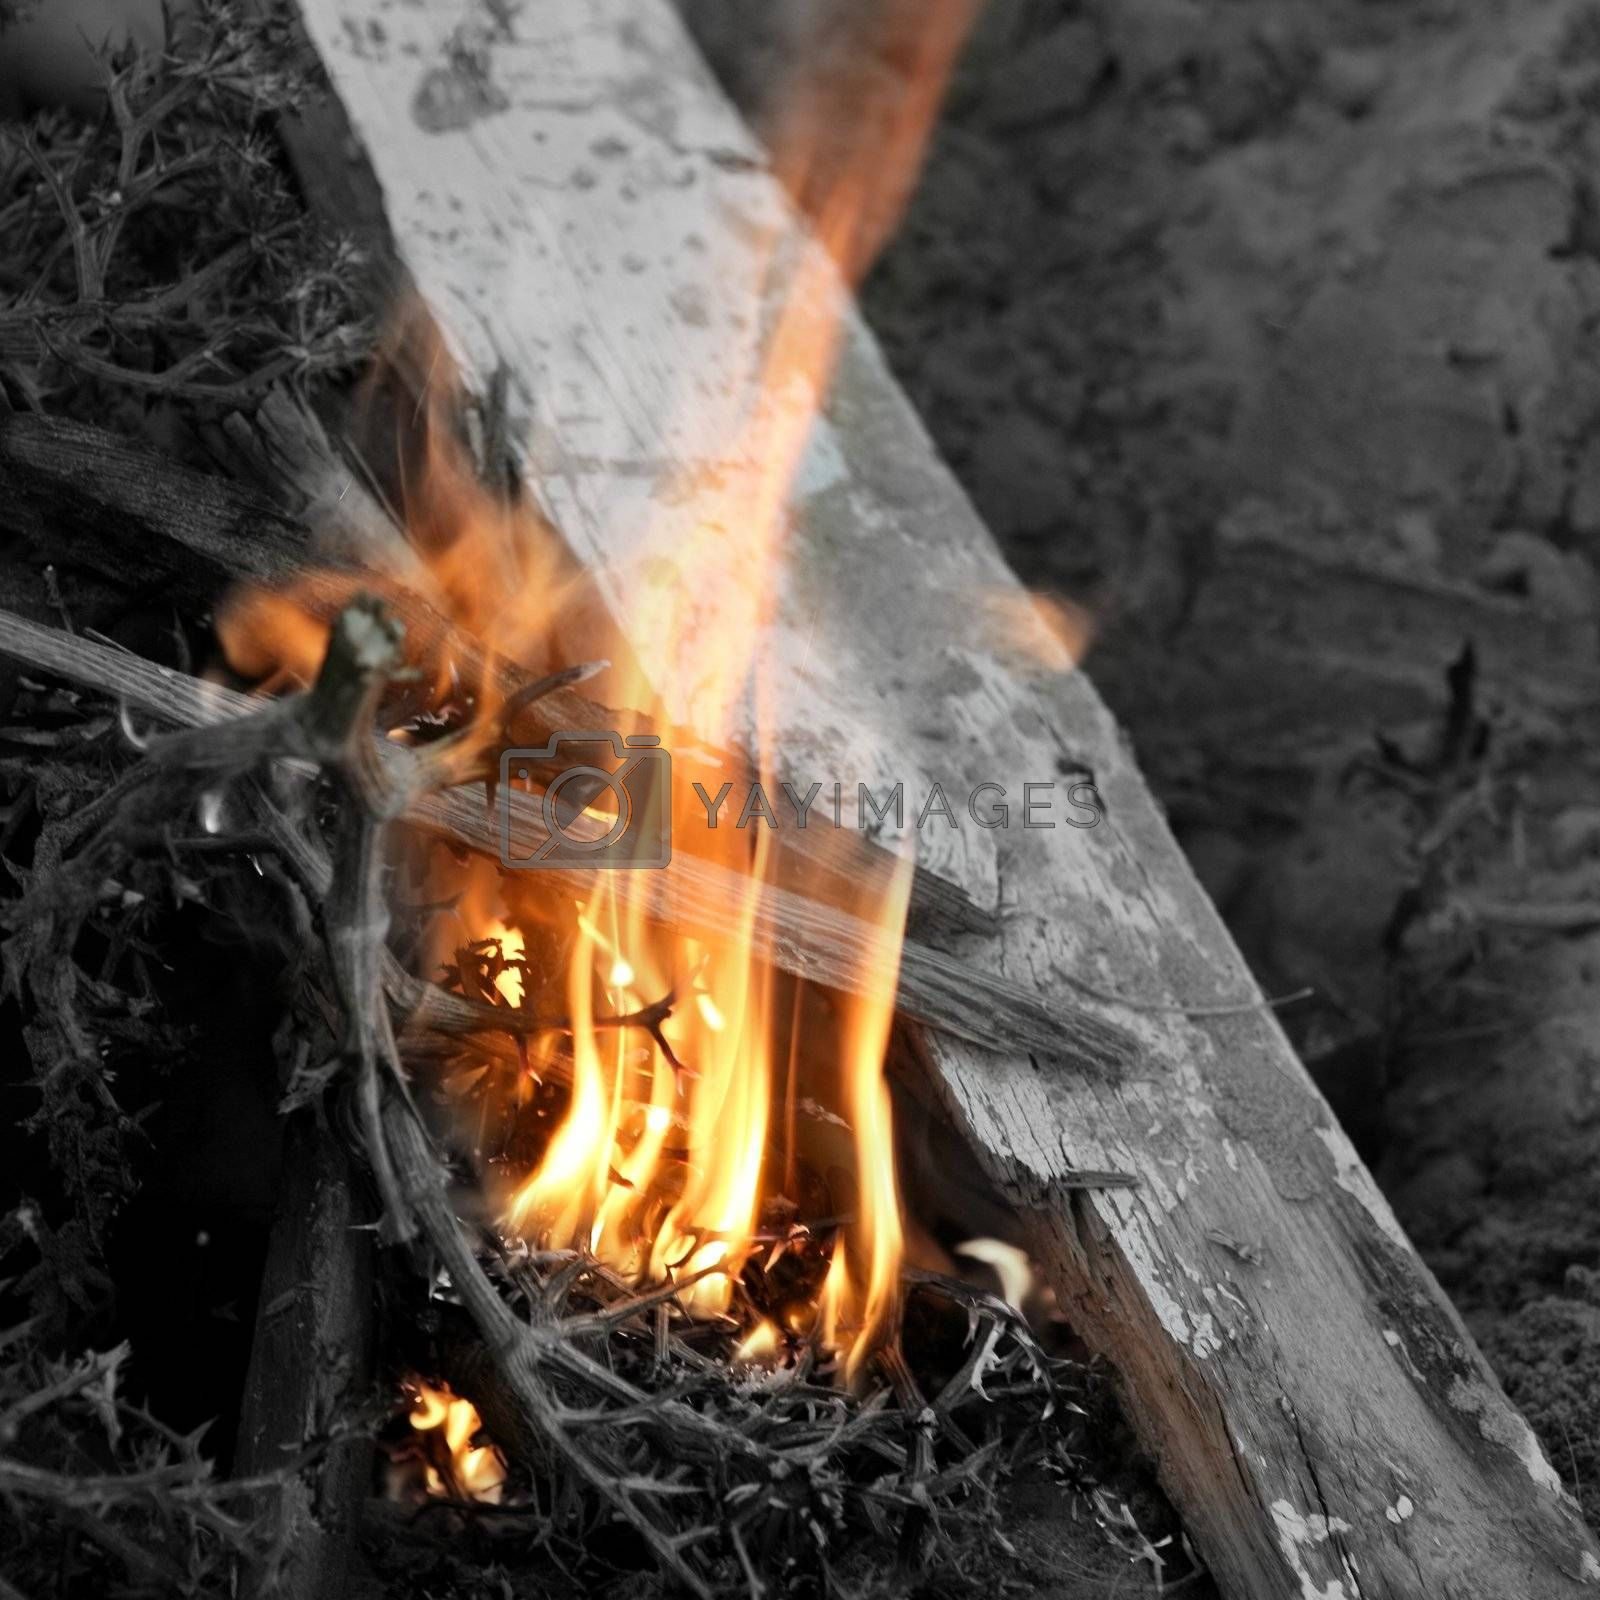 Royalty free image of Embers texture, wood in fire by lunamarina